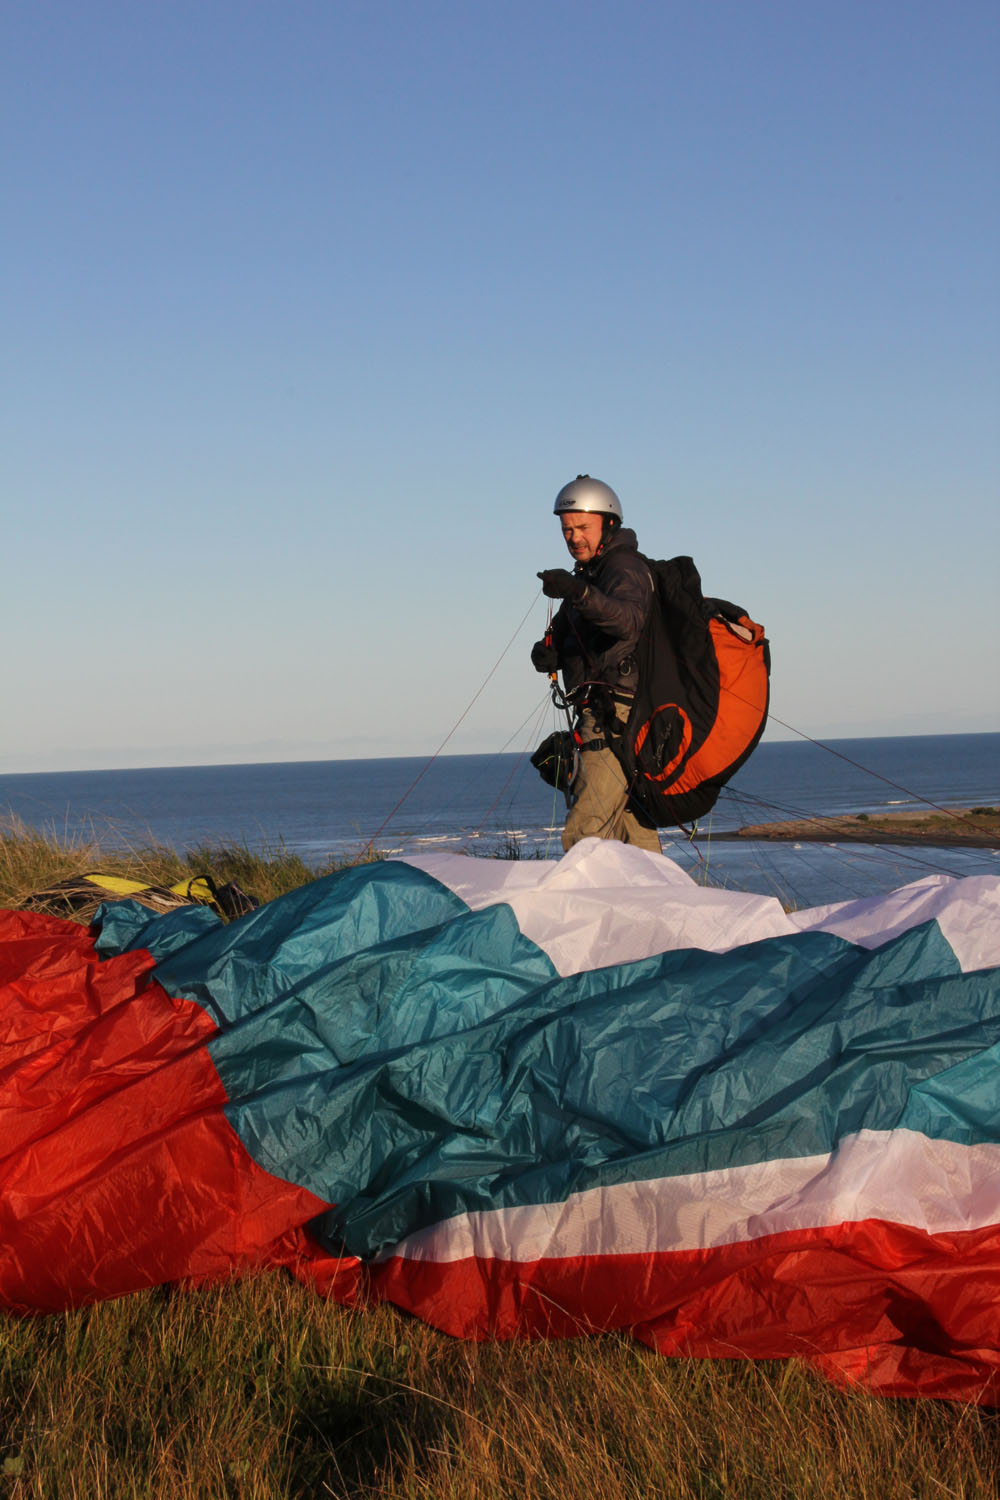 PG2 Course - Infinity Paragliding 8